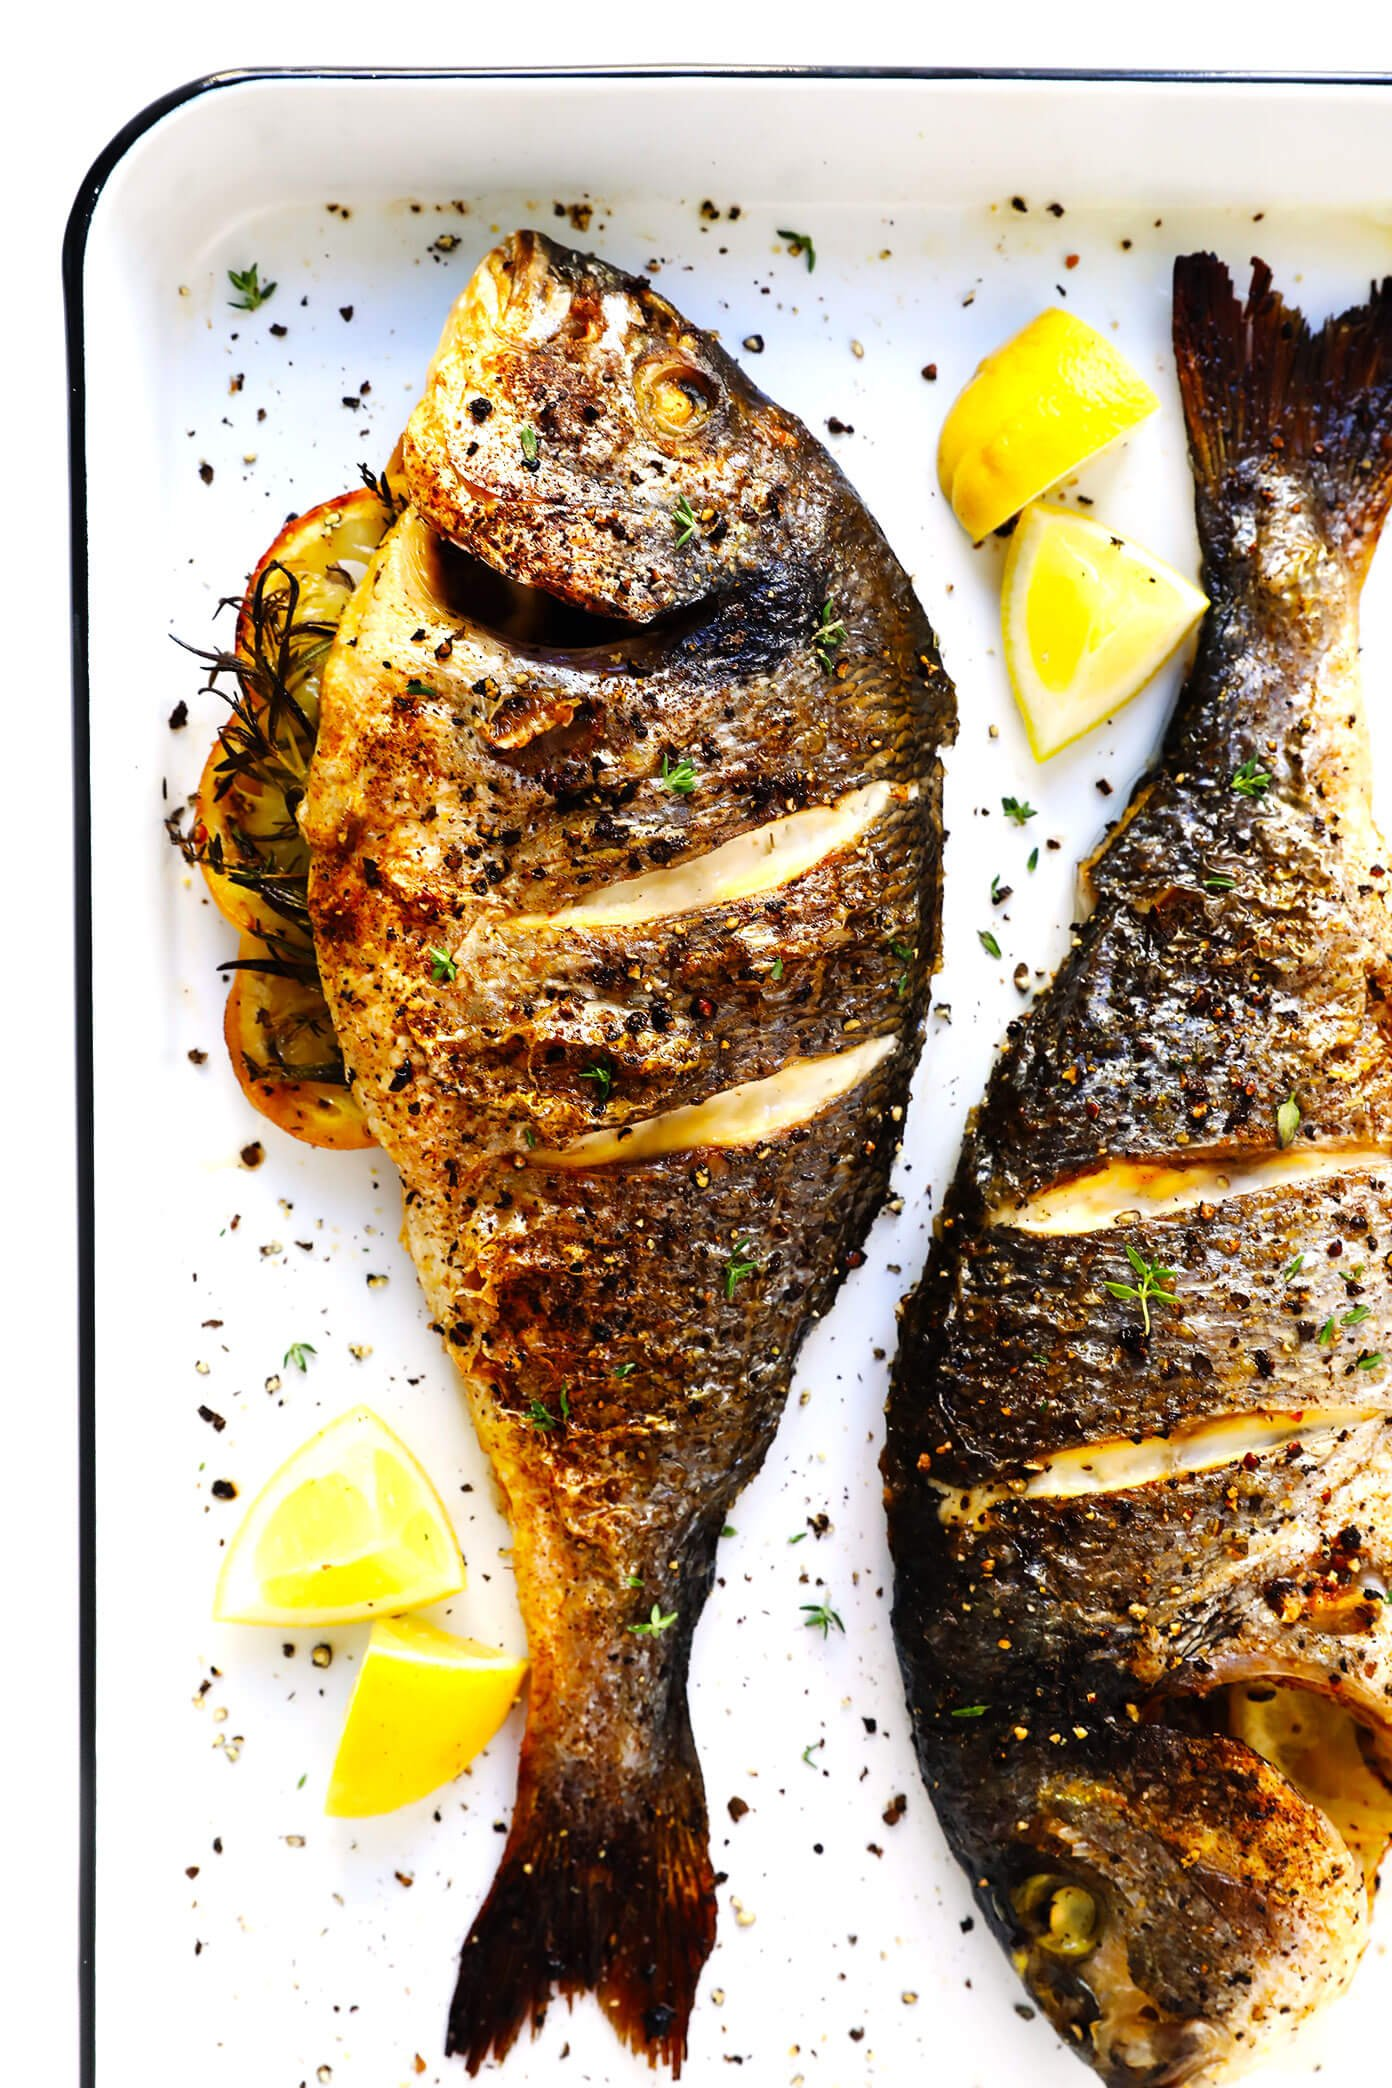 How To Make Whole Fish